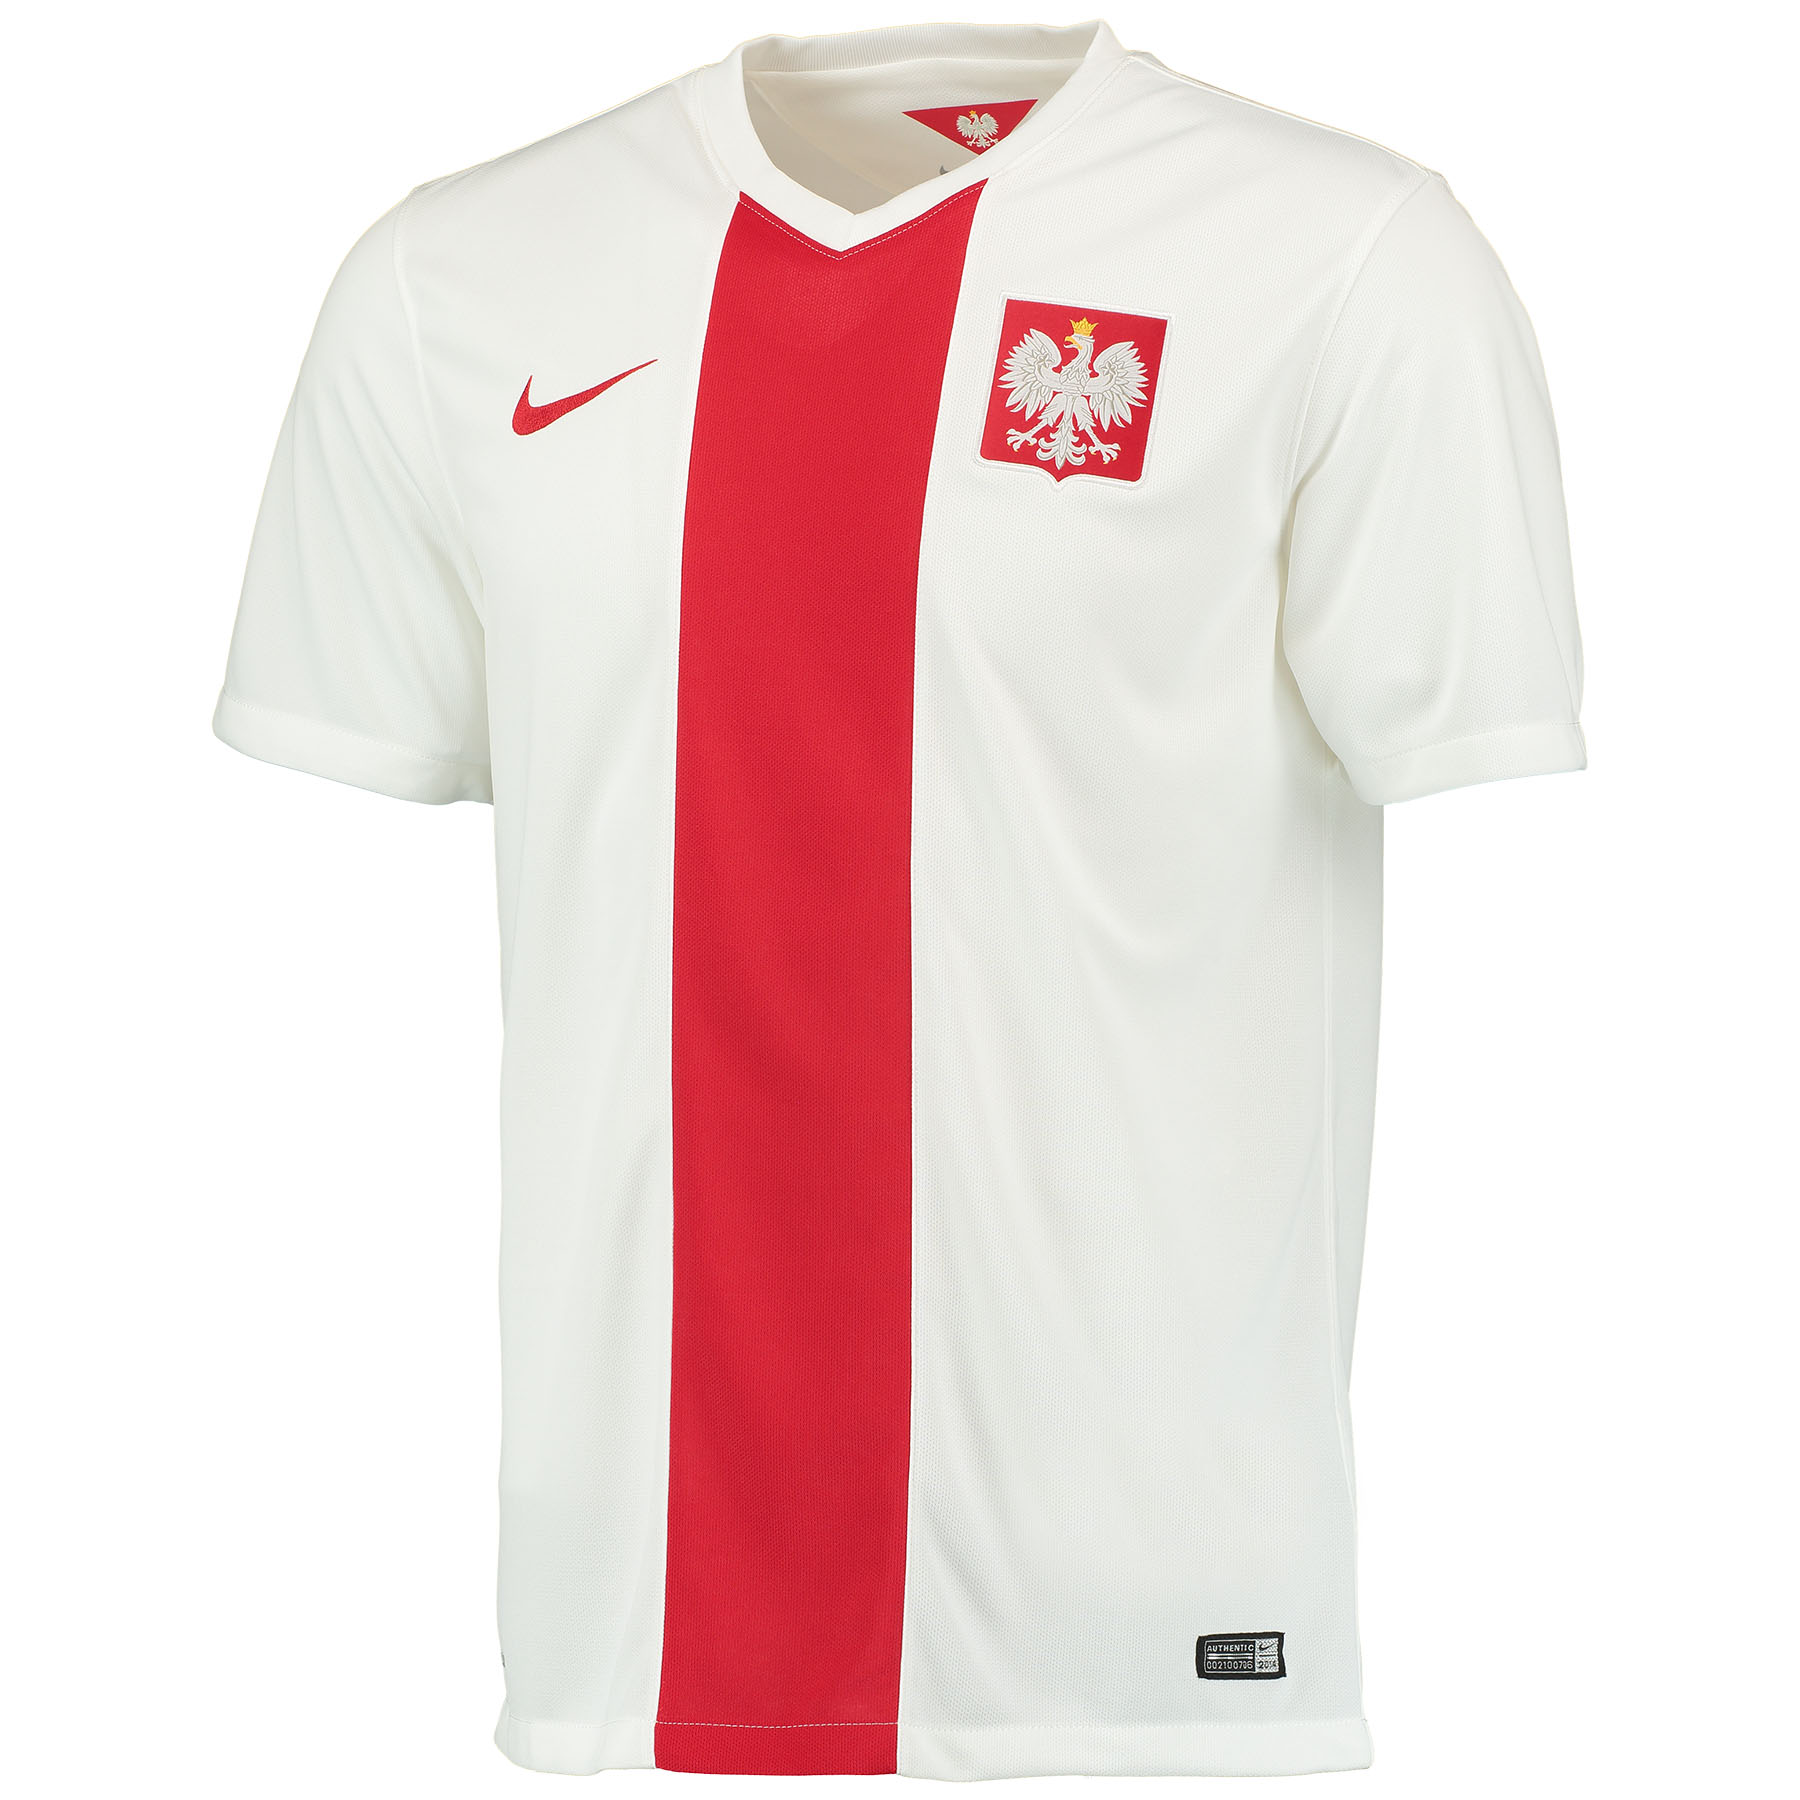 Poland Home Shirt 2014/15 White